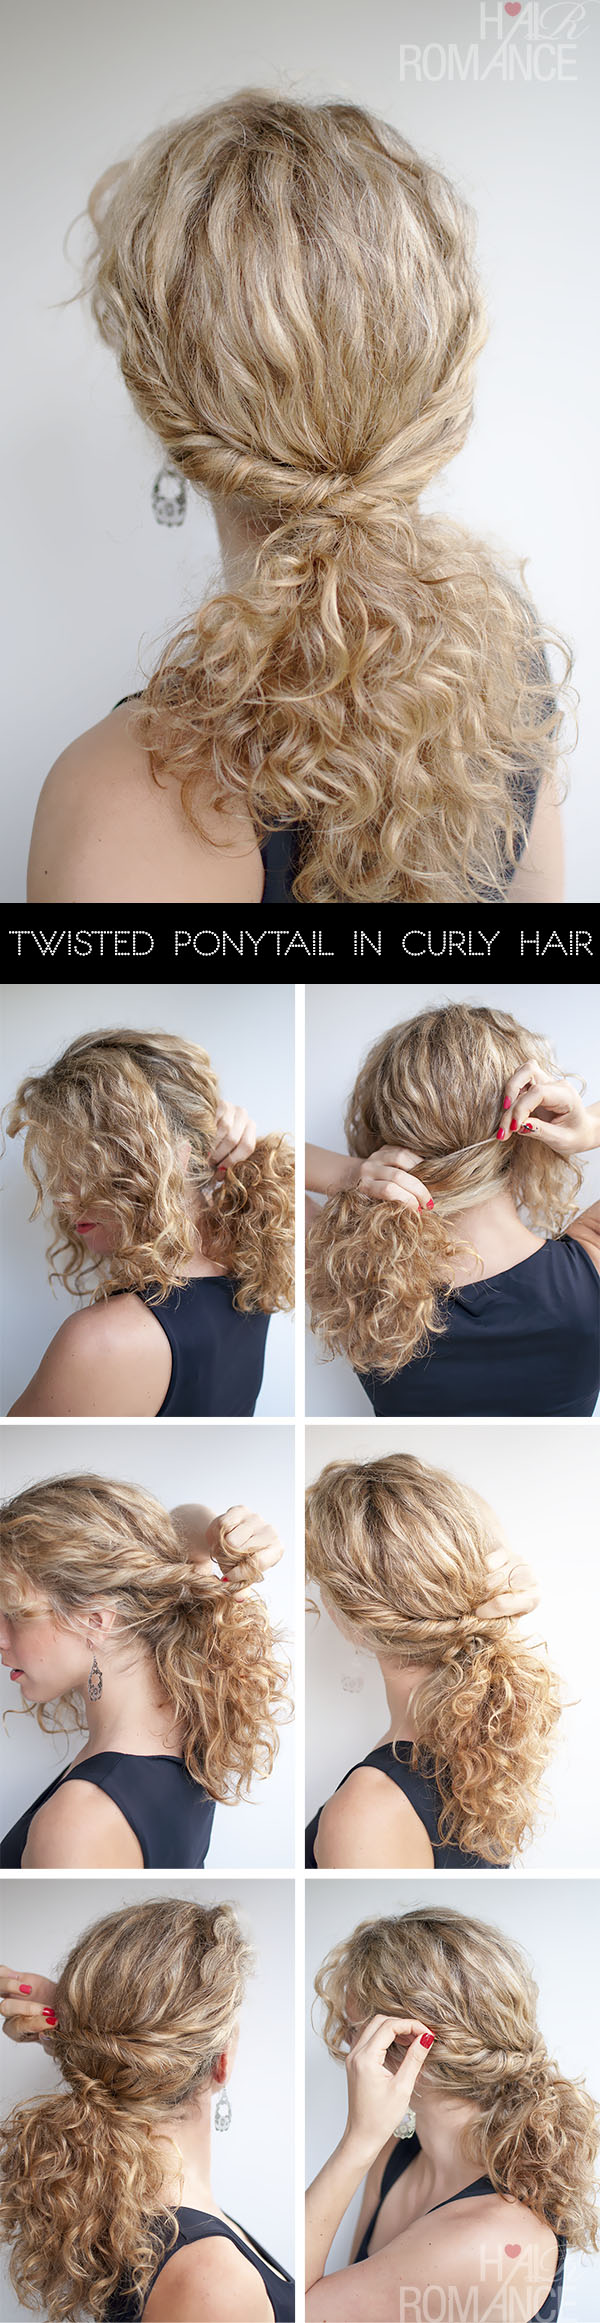 Curly Hairstyle Tutorial The Twist Over Ponytail Hair